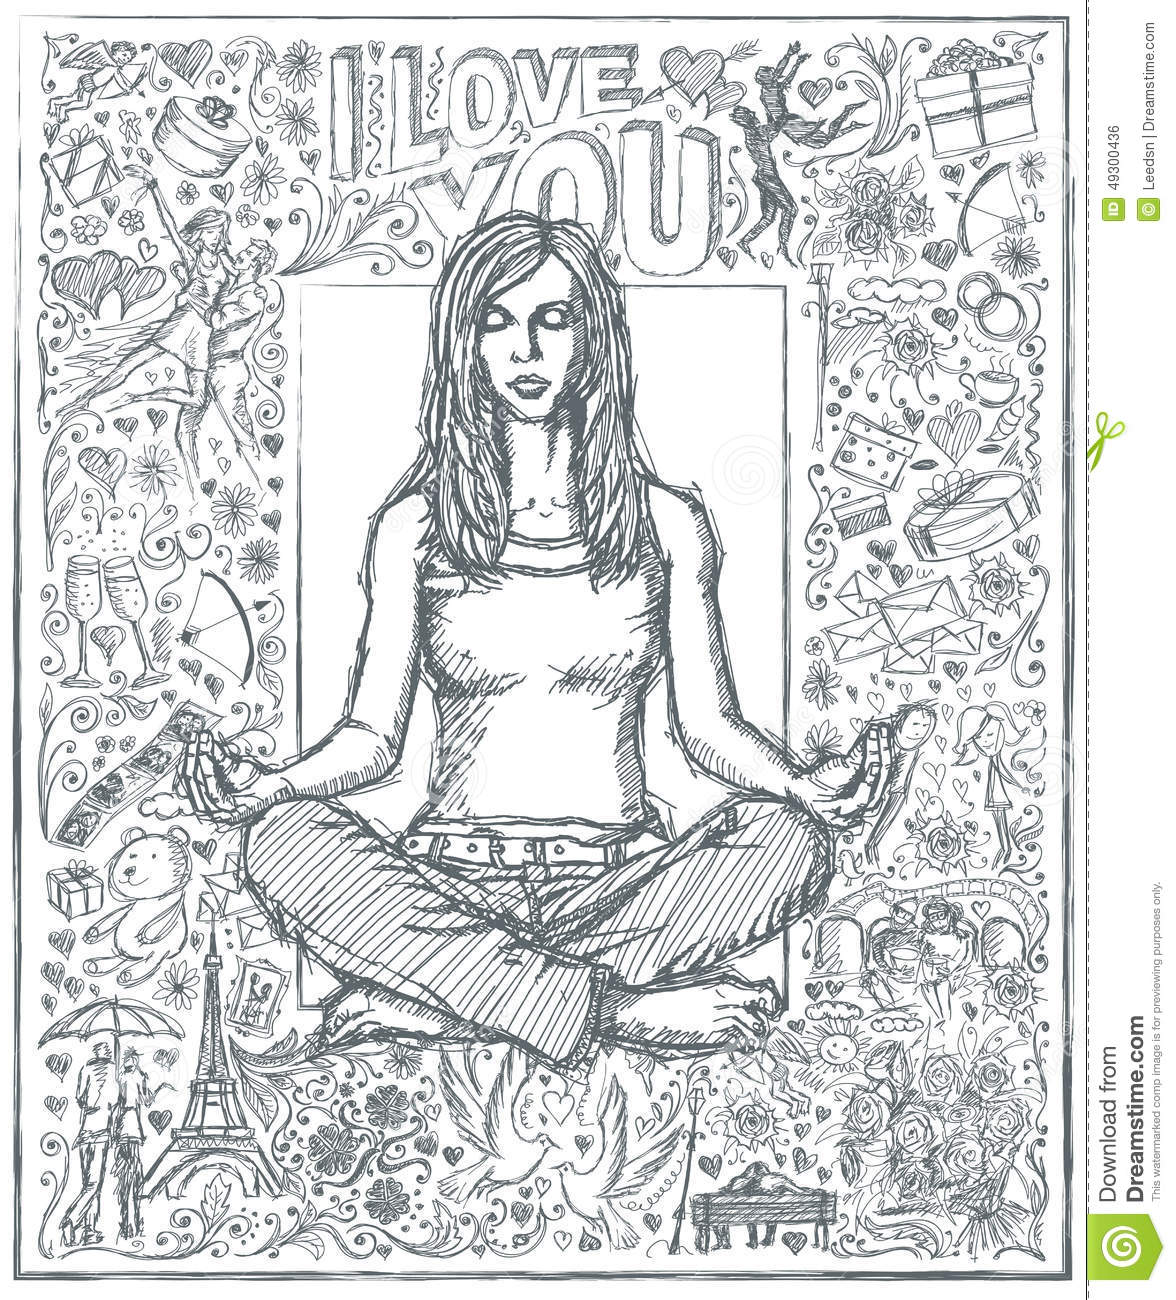 Sketch Woman Meditation In Lotus Pose Against Love Story Background 04